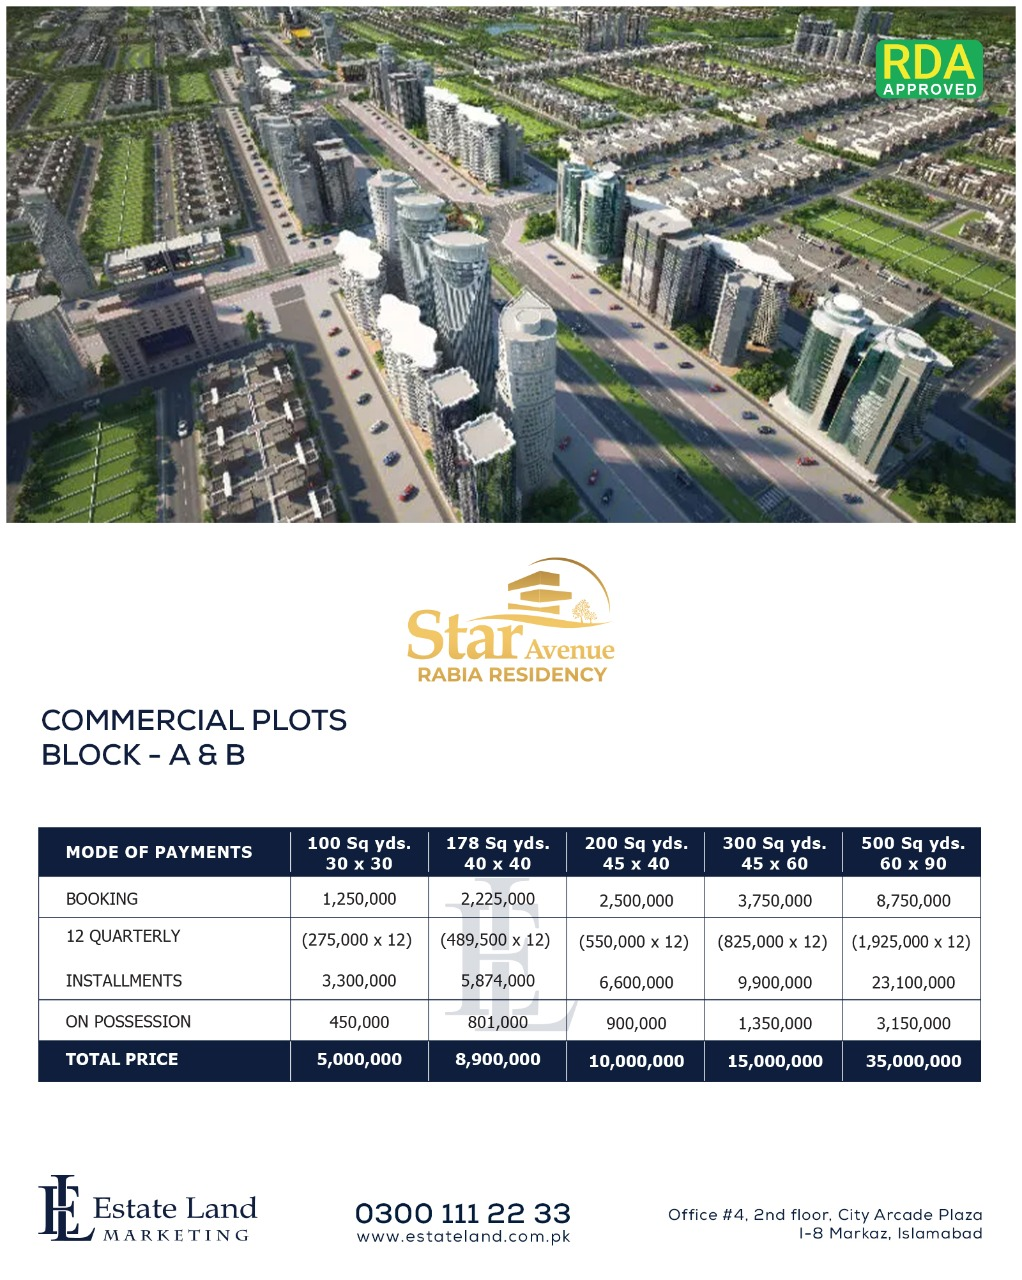 Rabia Residency Commercial Plots Payment Prices